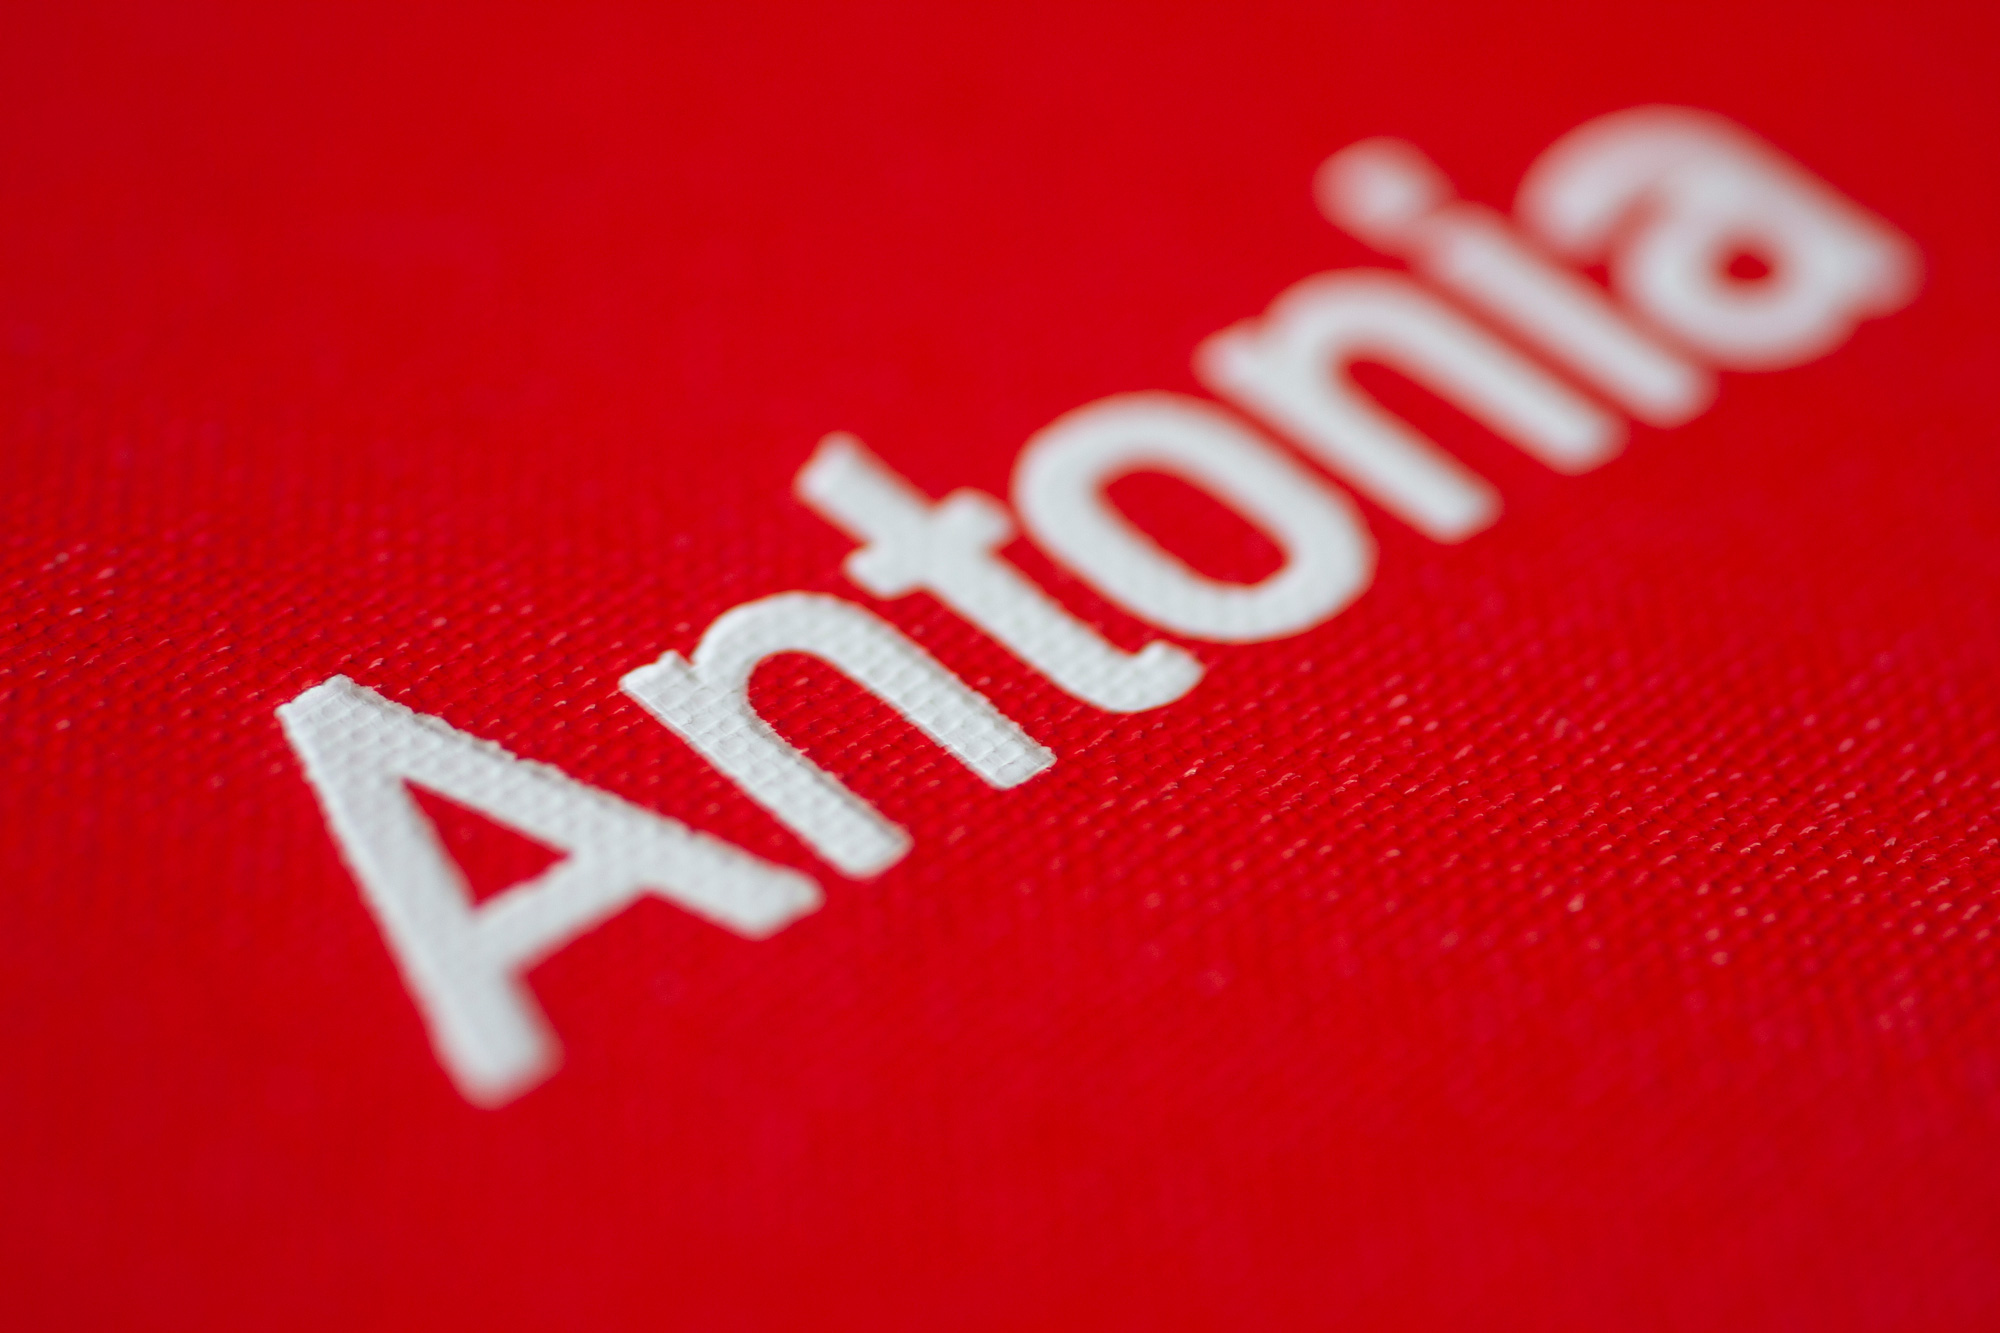 """Red Book With White Hotfoil Print """"Antonia"""", Closeup At The Name Print"""